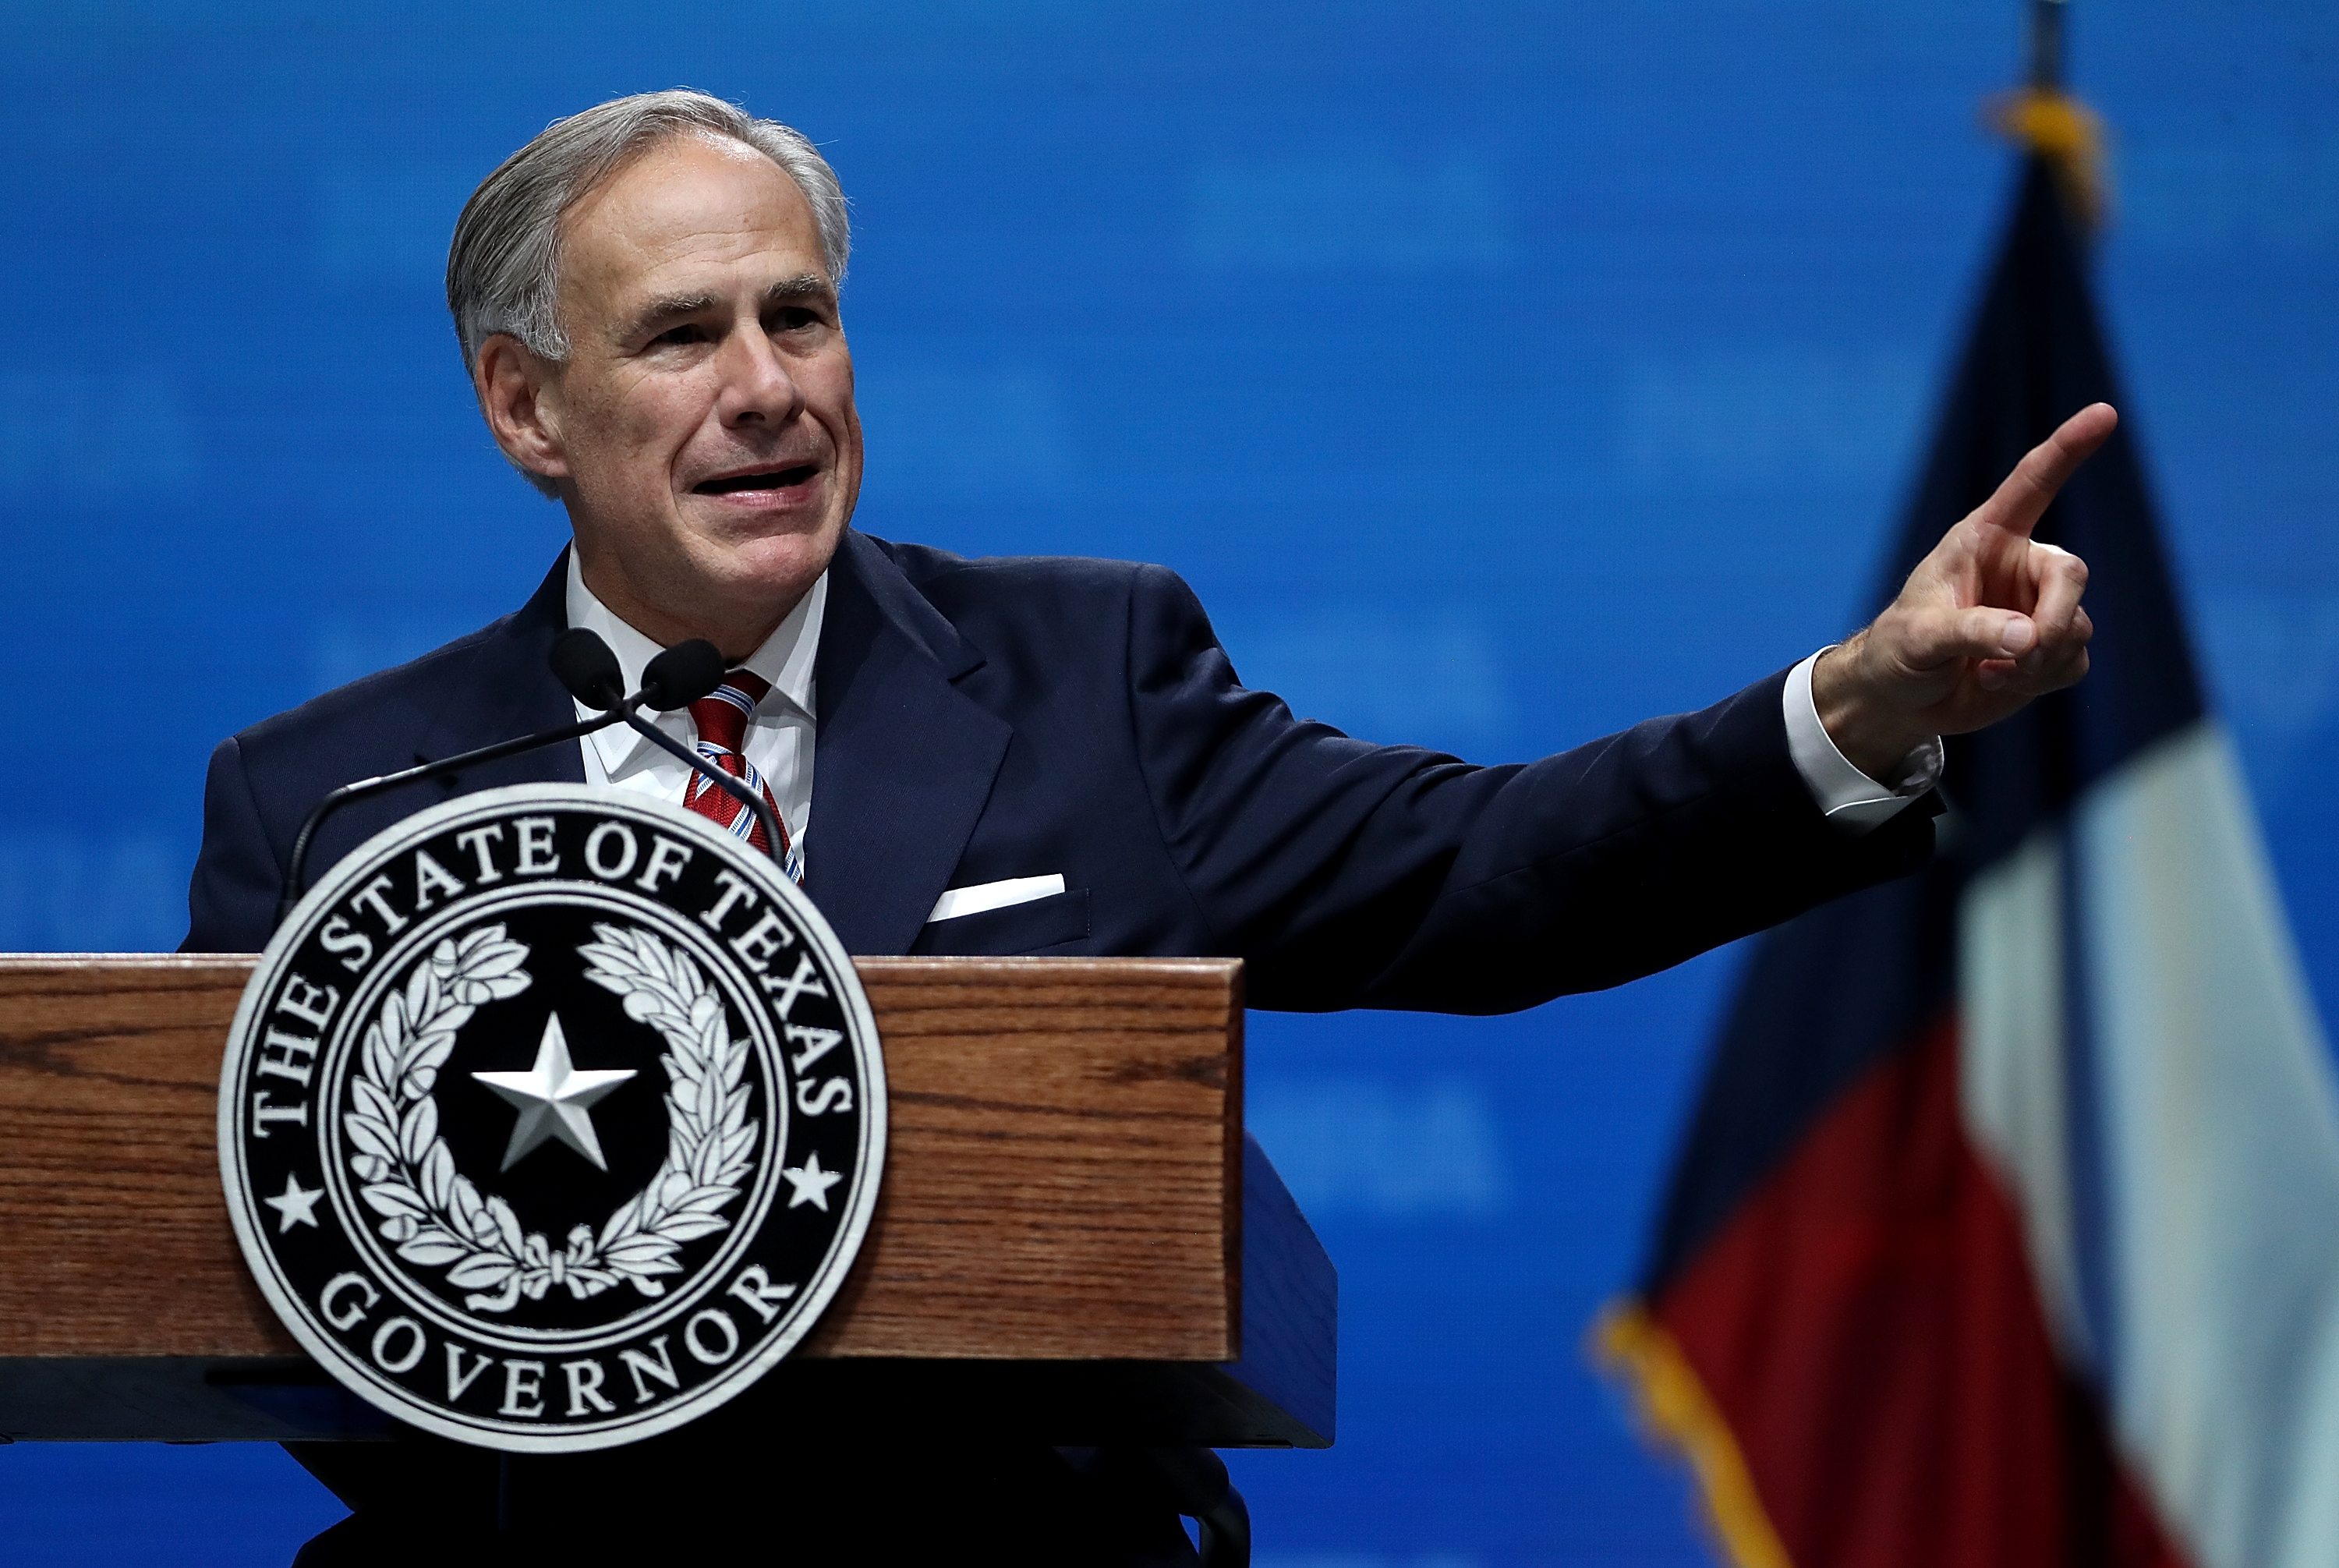 Texas Gov. Greg Abbott at the Kay Bailey Hutchison Convention Center on May 4, 2018 in Dallas, Texas. (Photo by Justin Sullivan/Getty Images)